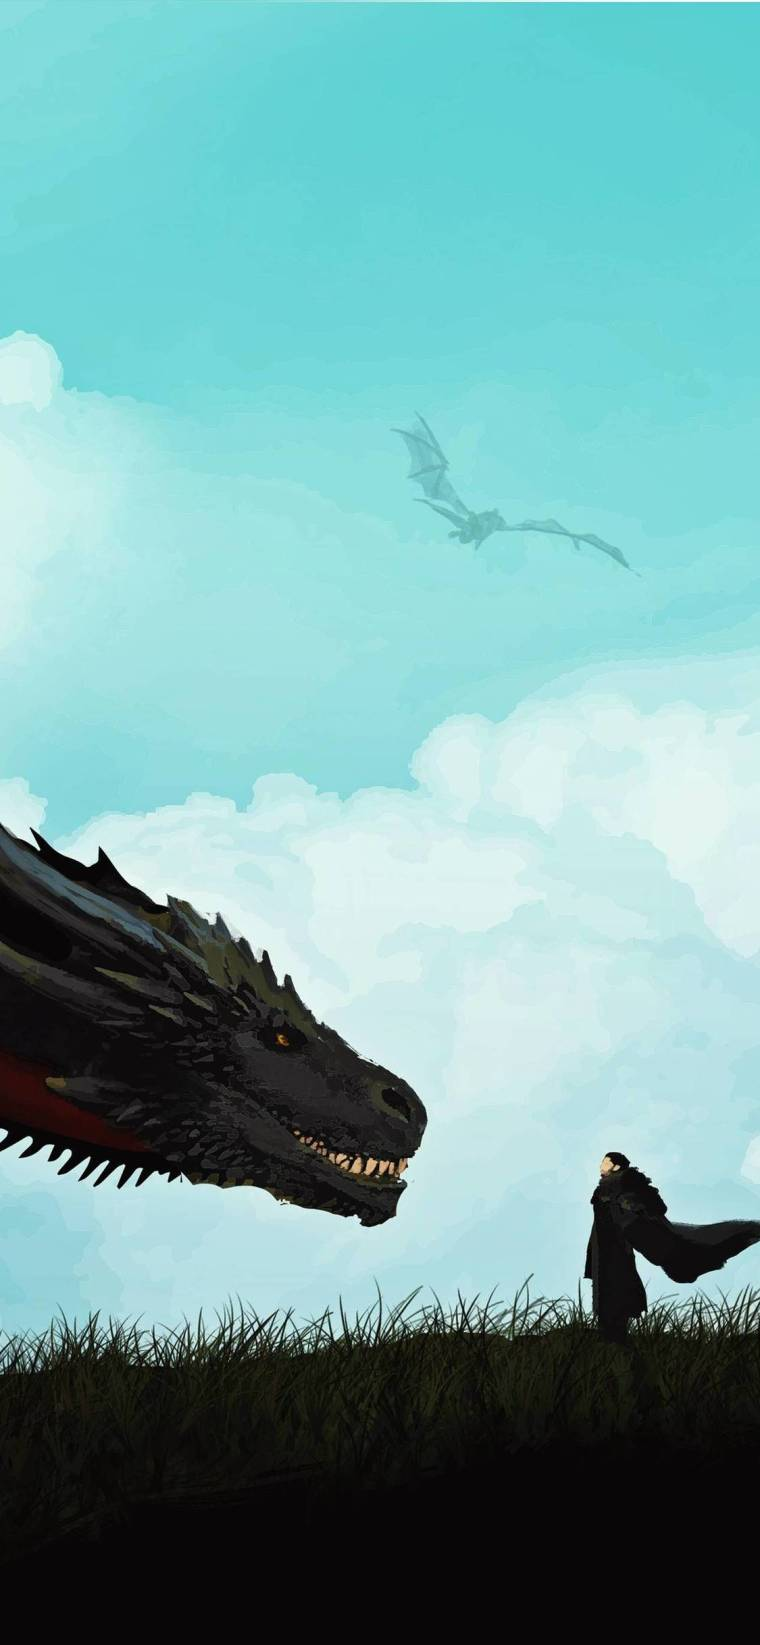 jon-snow-and-khalessi-dragon iPhone game of thrones wallpaper